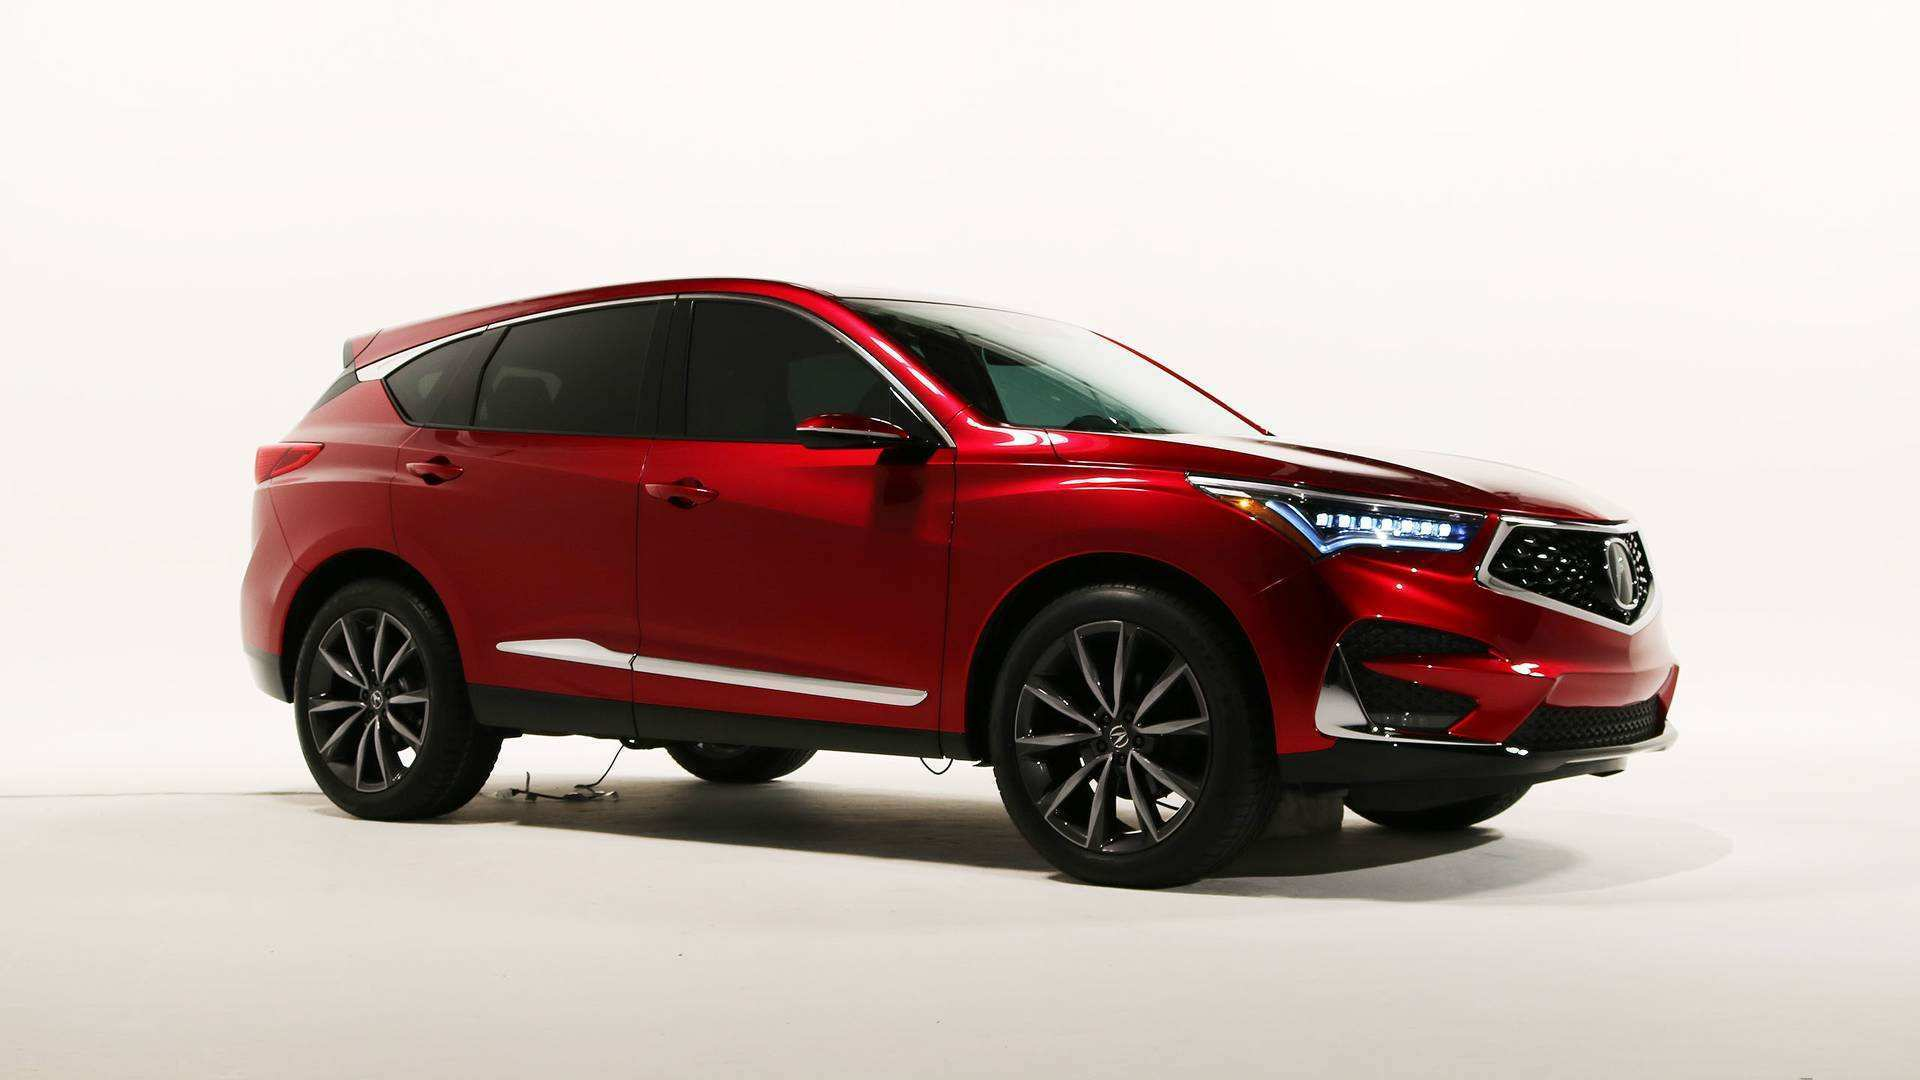 77 All New 2019 Acura Rdx Concept Performance